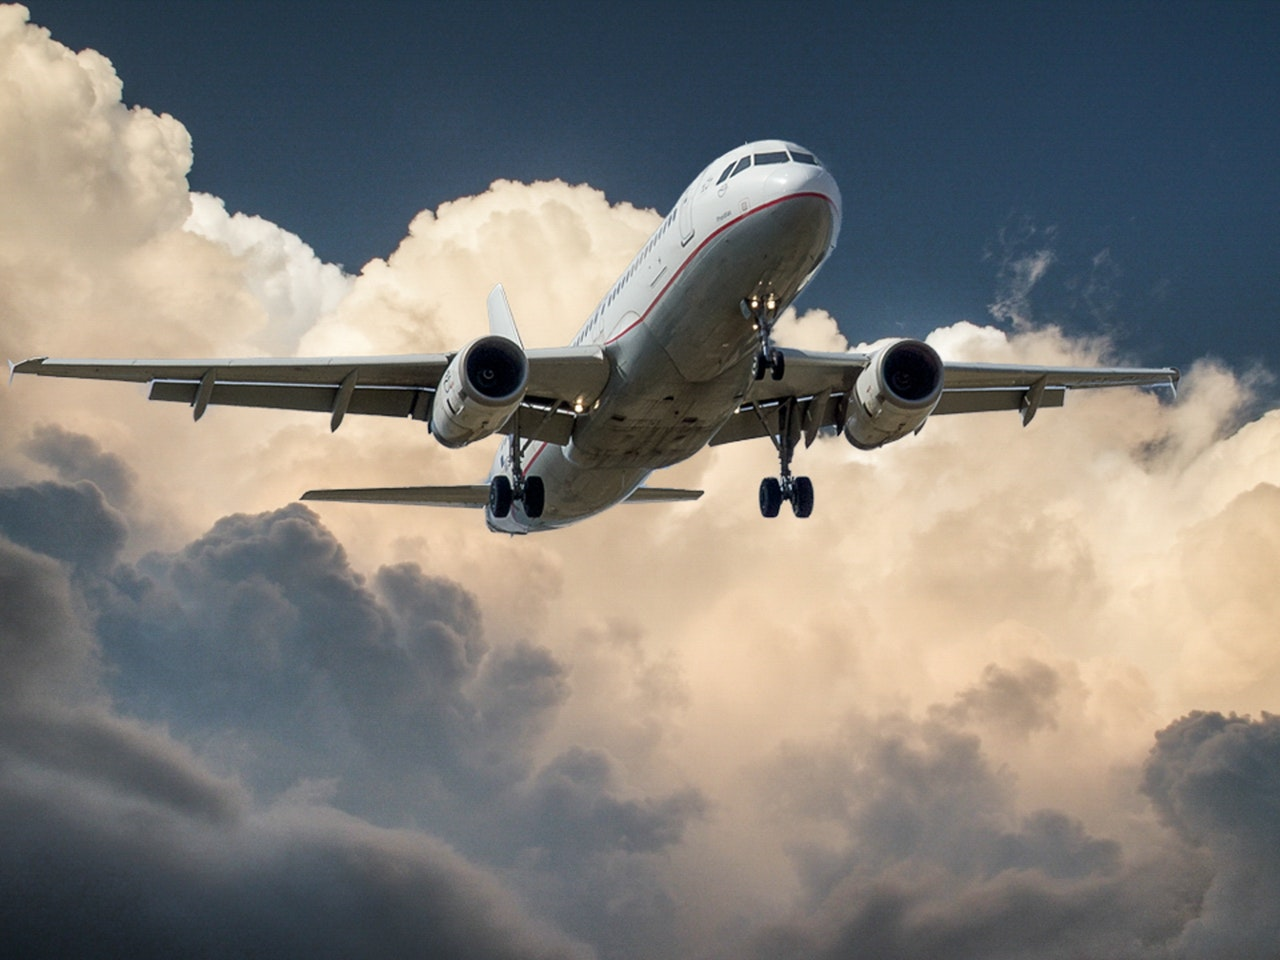 A Brief History of the Aviation Industry